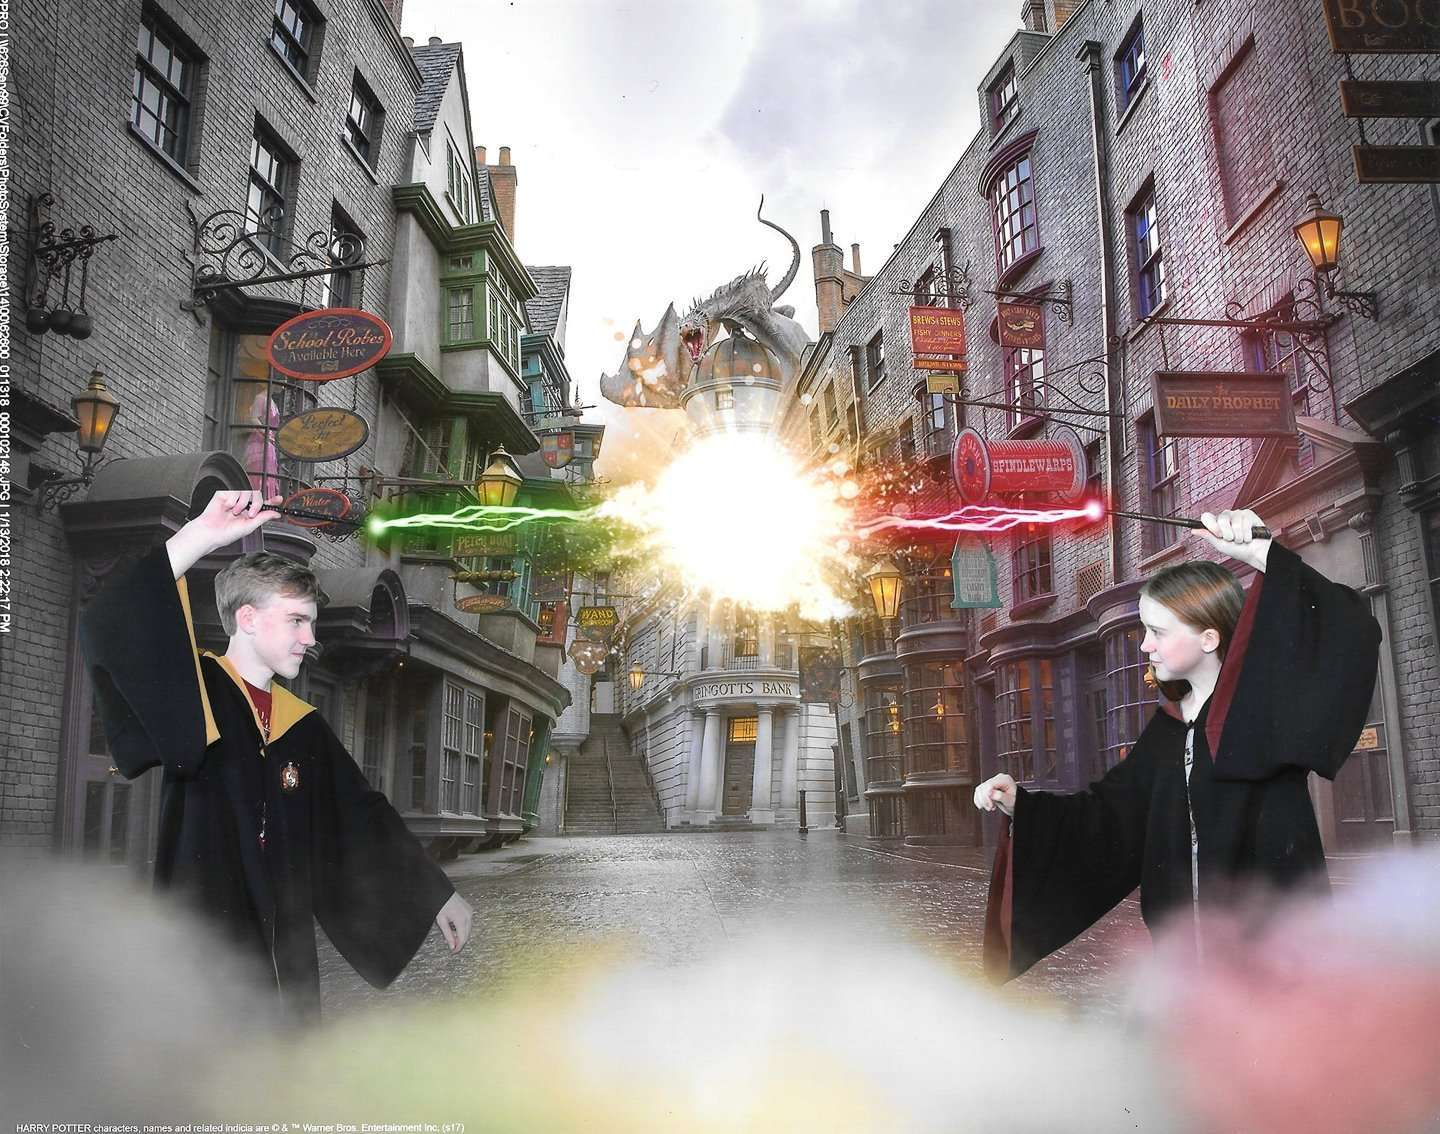 Get Your Own Harry Potter Moving Pictures at Shutterbutton's